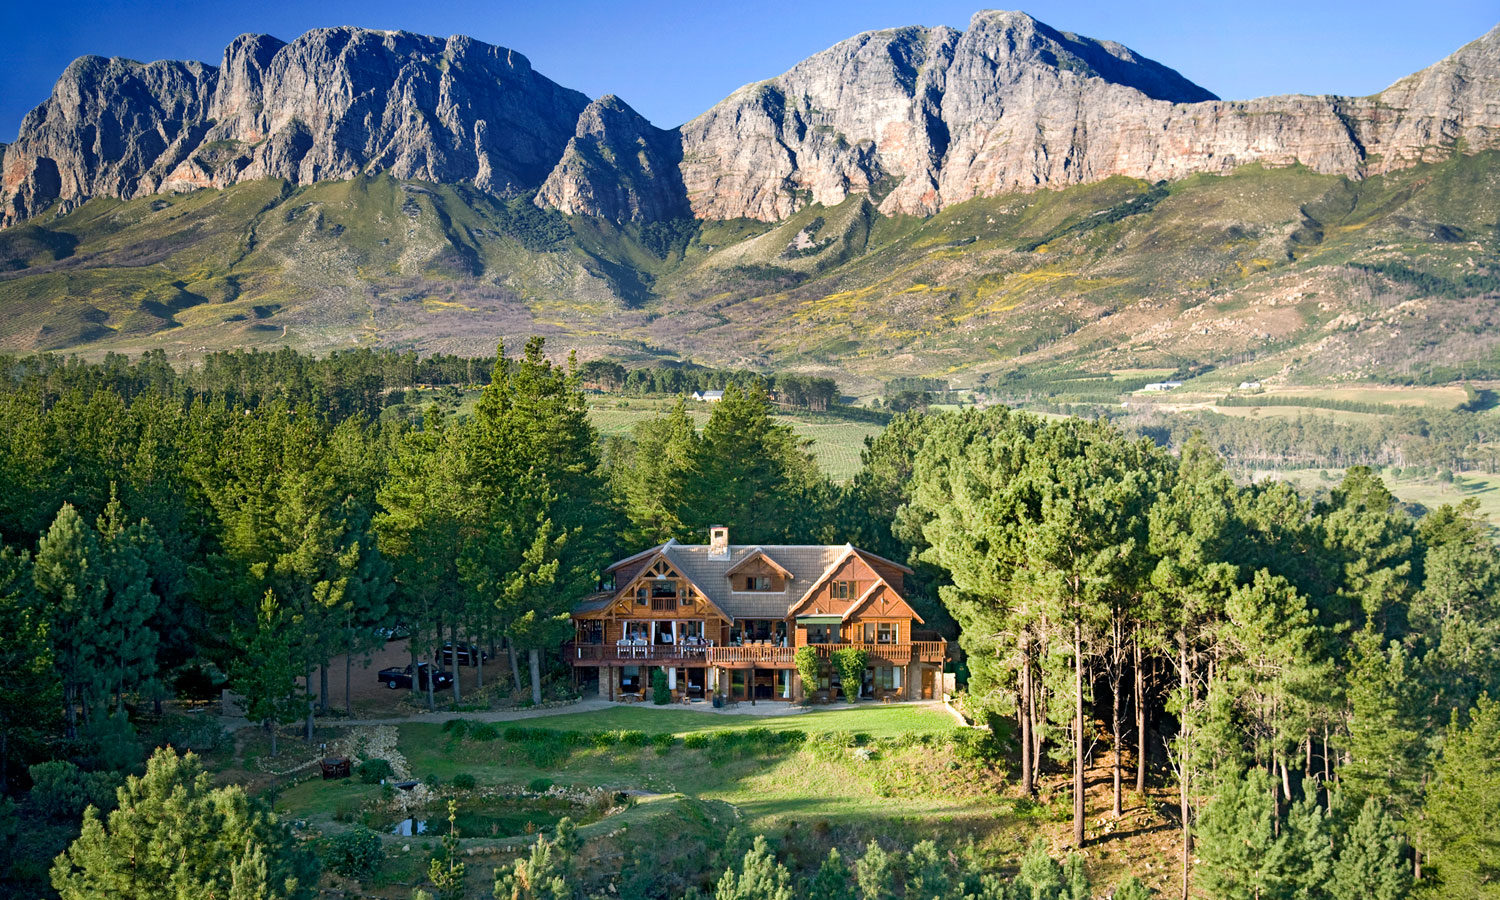 The main Lodge surrounded by 260 ha of forest, fynbos and vineyards